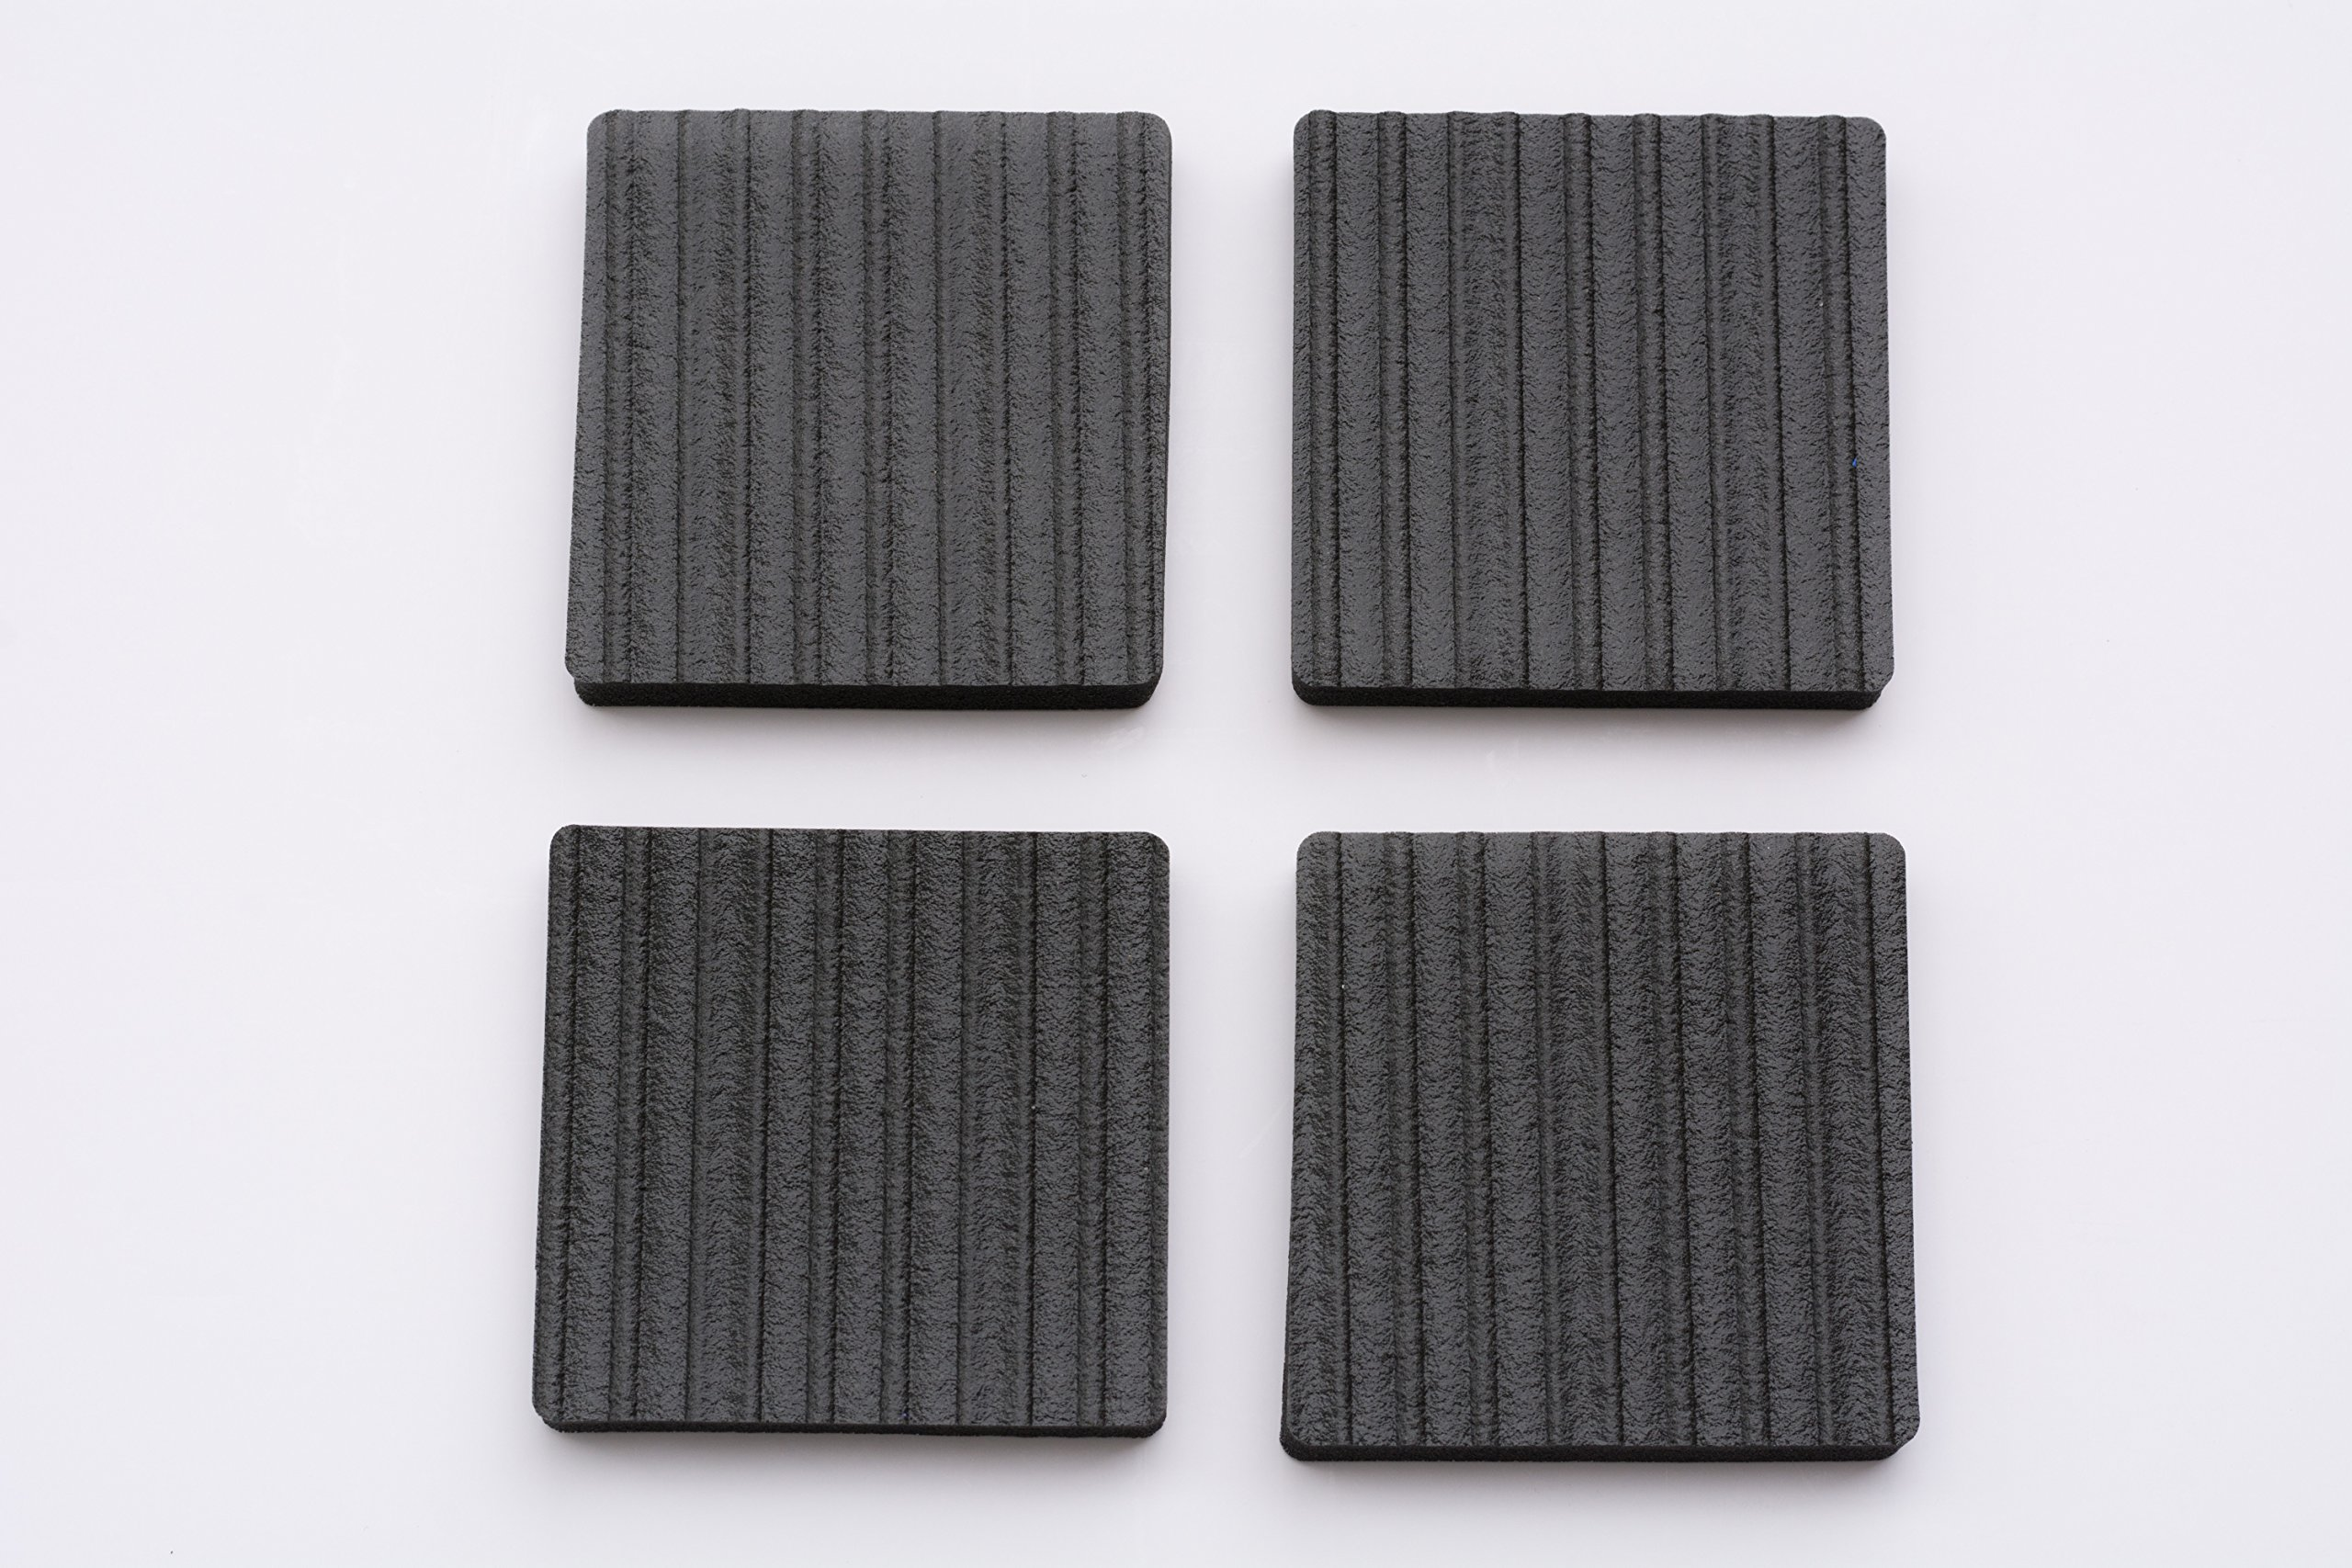 Lil Grippers Square Furniture Pads - Keep Furniture Where it Belongs! (3 Inch) 4 Pack by Lil Grippers